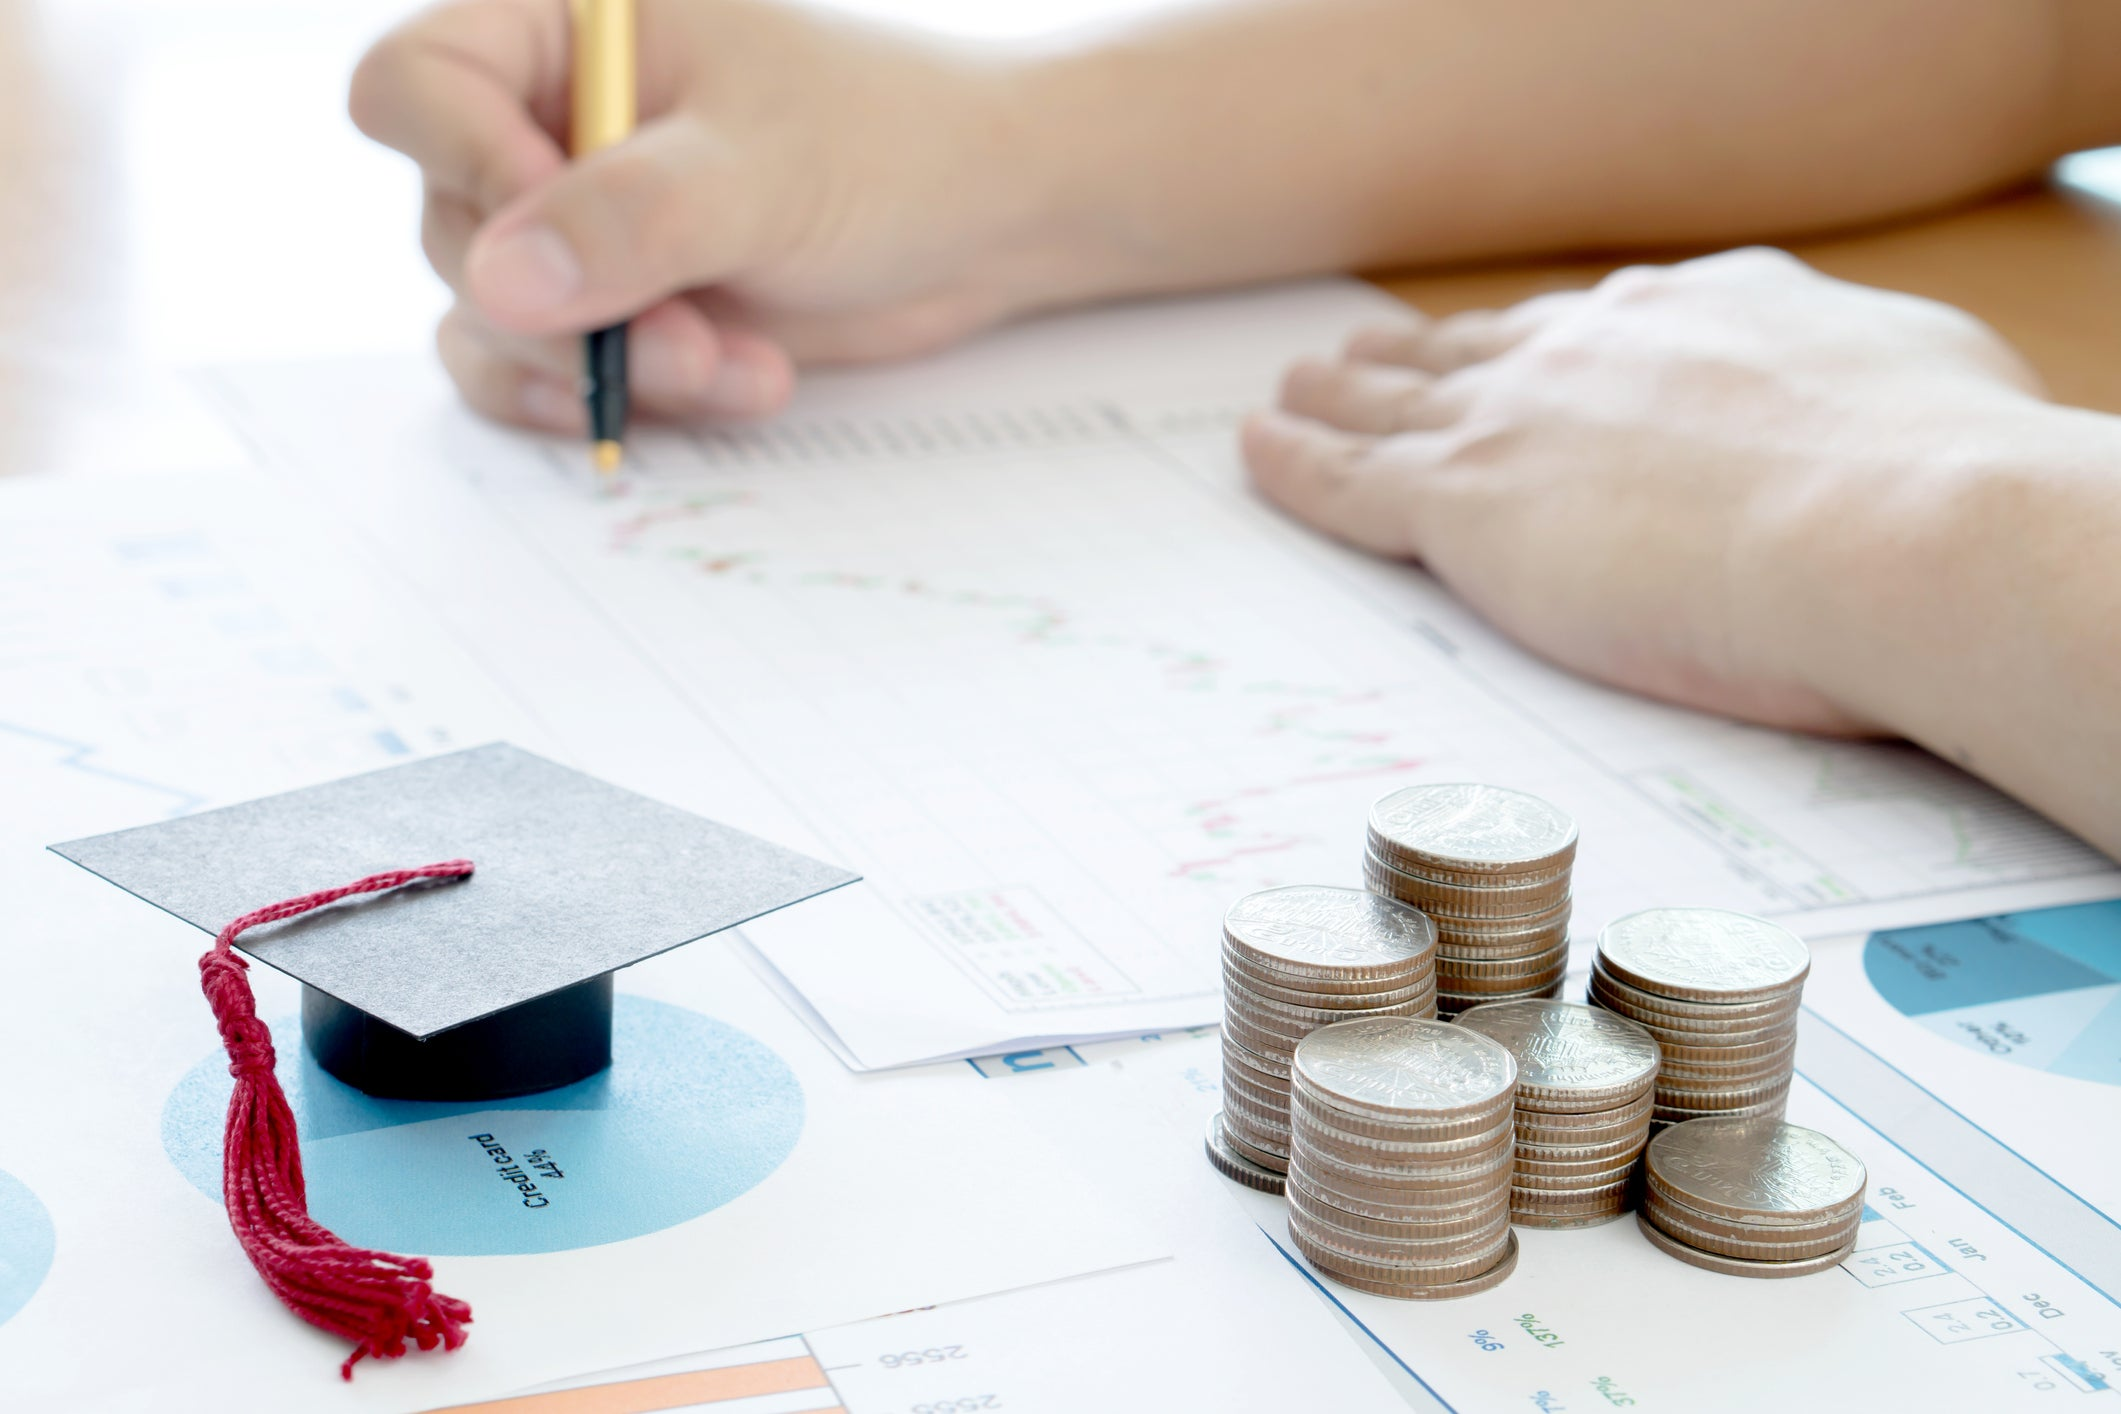 hands writing out timeline beside miniature graduation cap and stack of coins